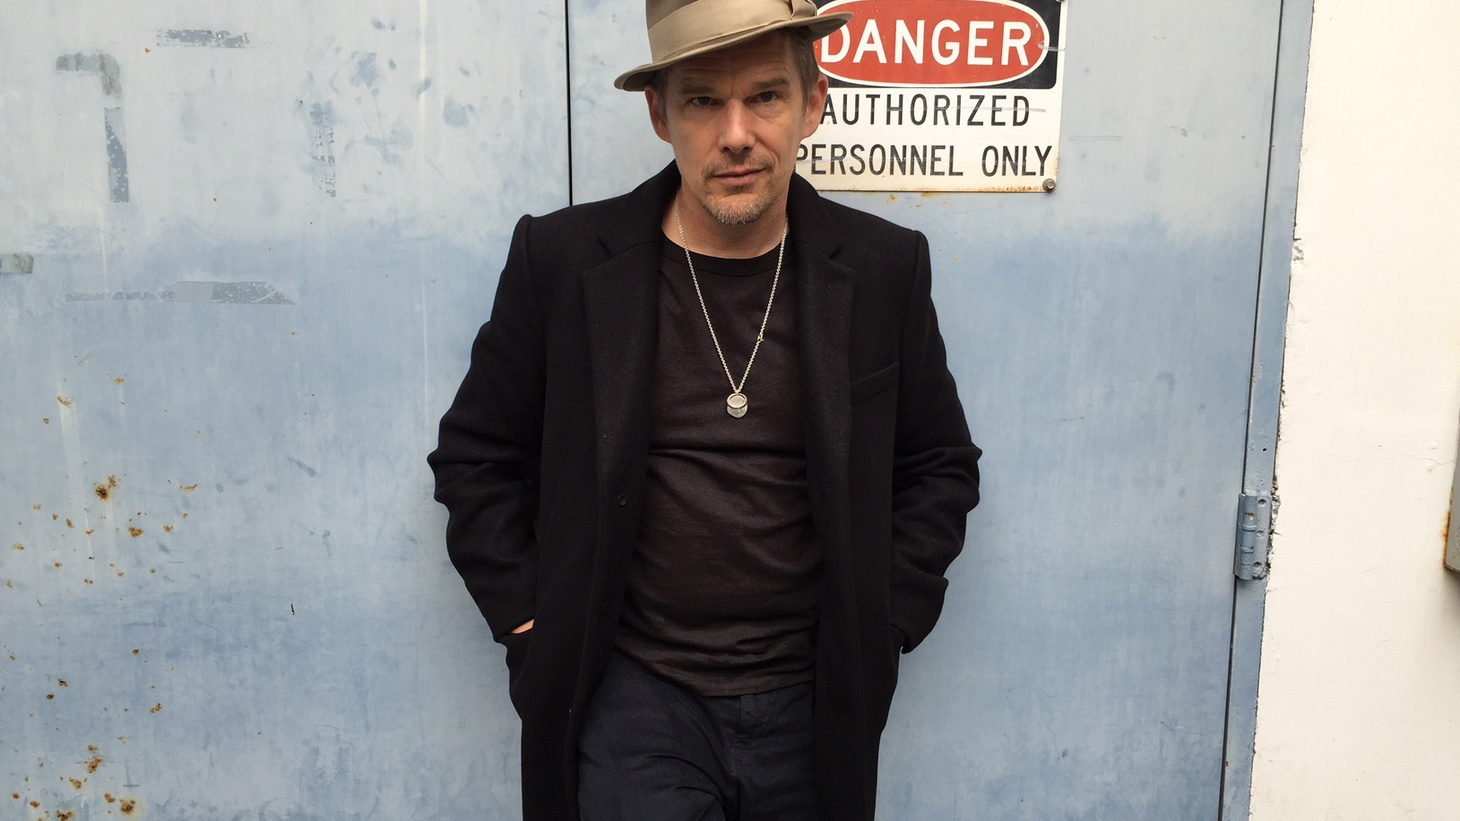 Actor and director Ethan Hawke plays jazz legend Chet Baker in his latest film, but his personal connection to music goes beyond any single role. In his Guest DJ set, he shares the Wilco song that helped him through hard times, celebrates the neverending creativity of Willie Nelson, and shares some jazz favorites.